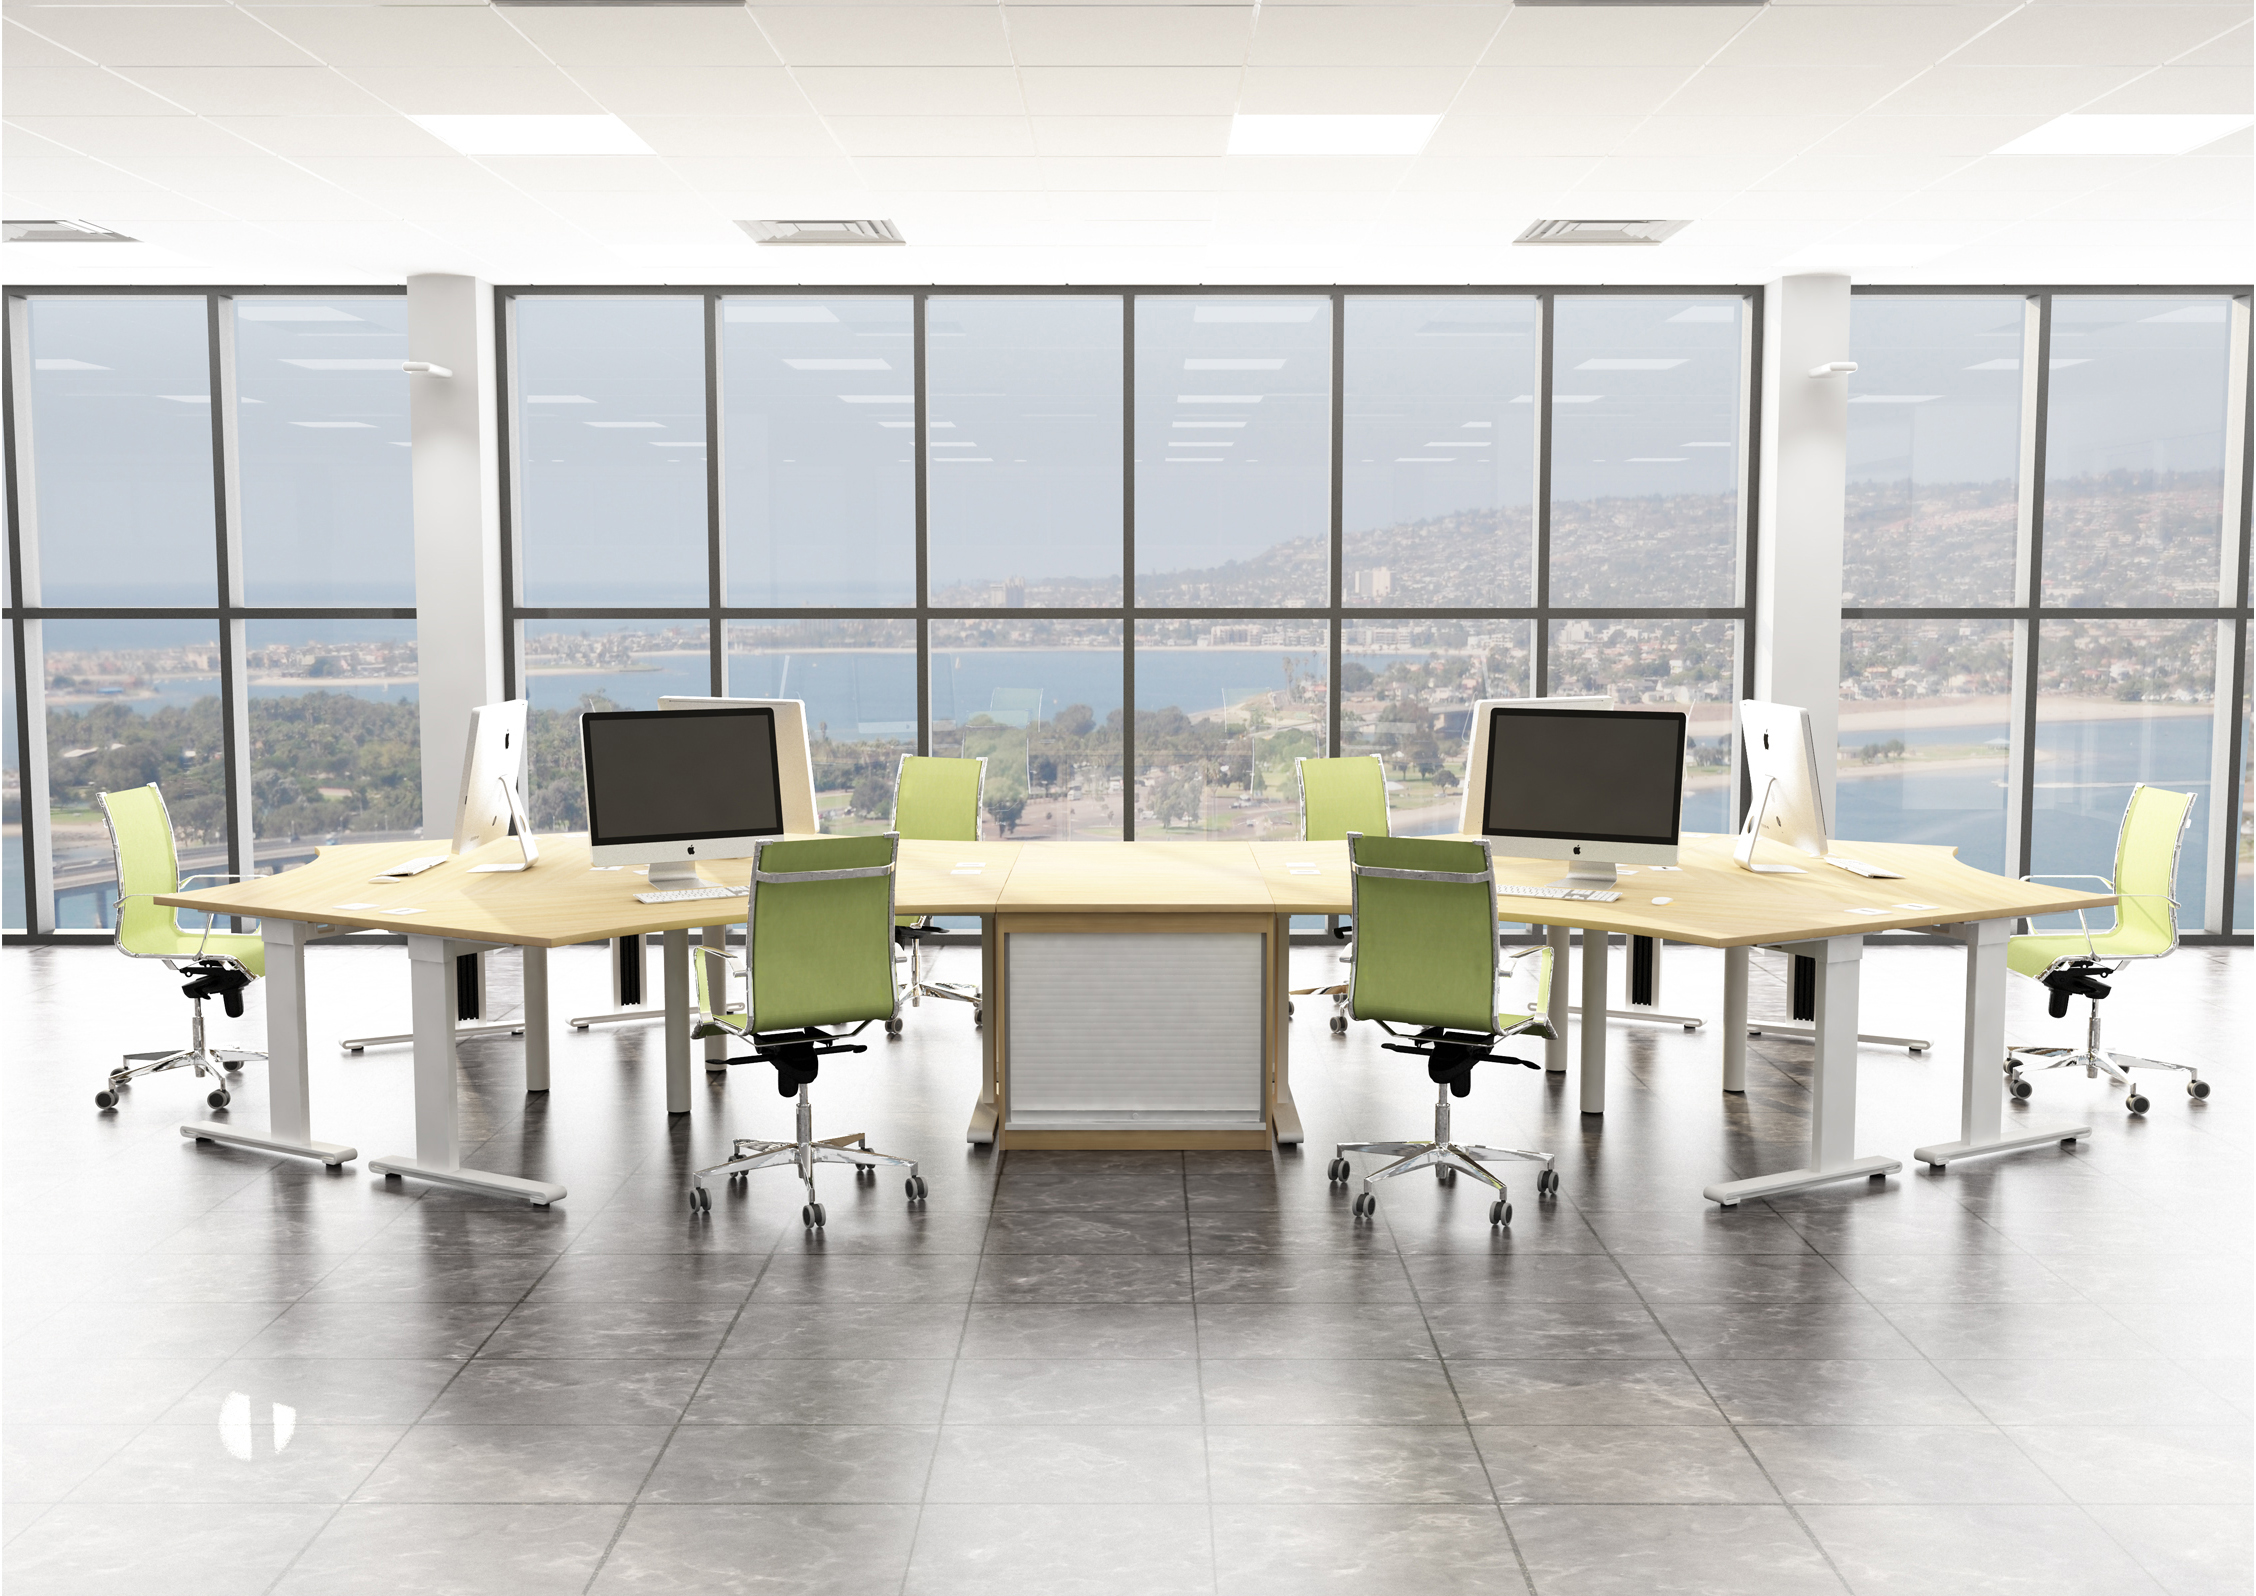 Offices 3